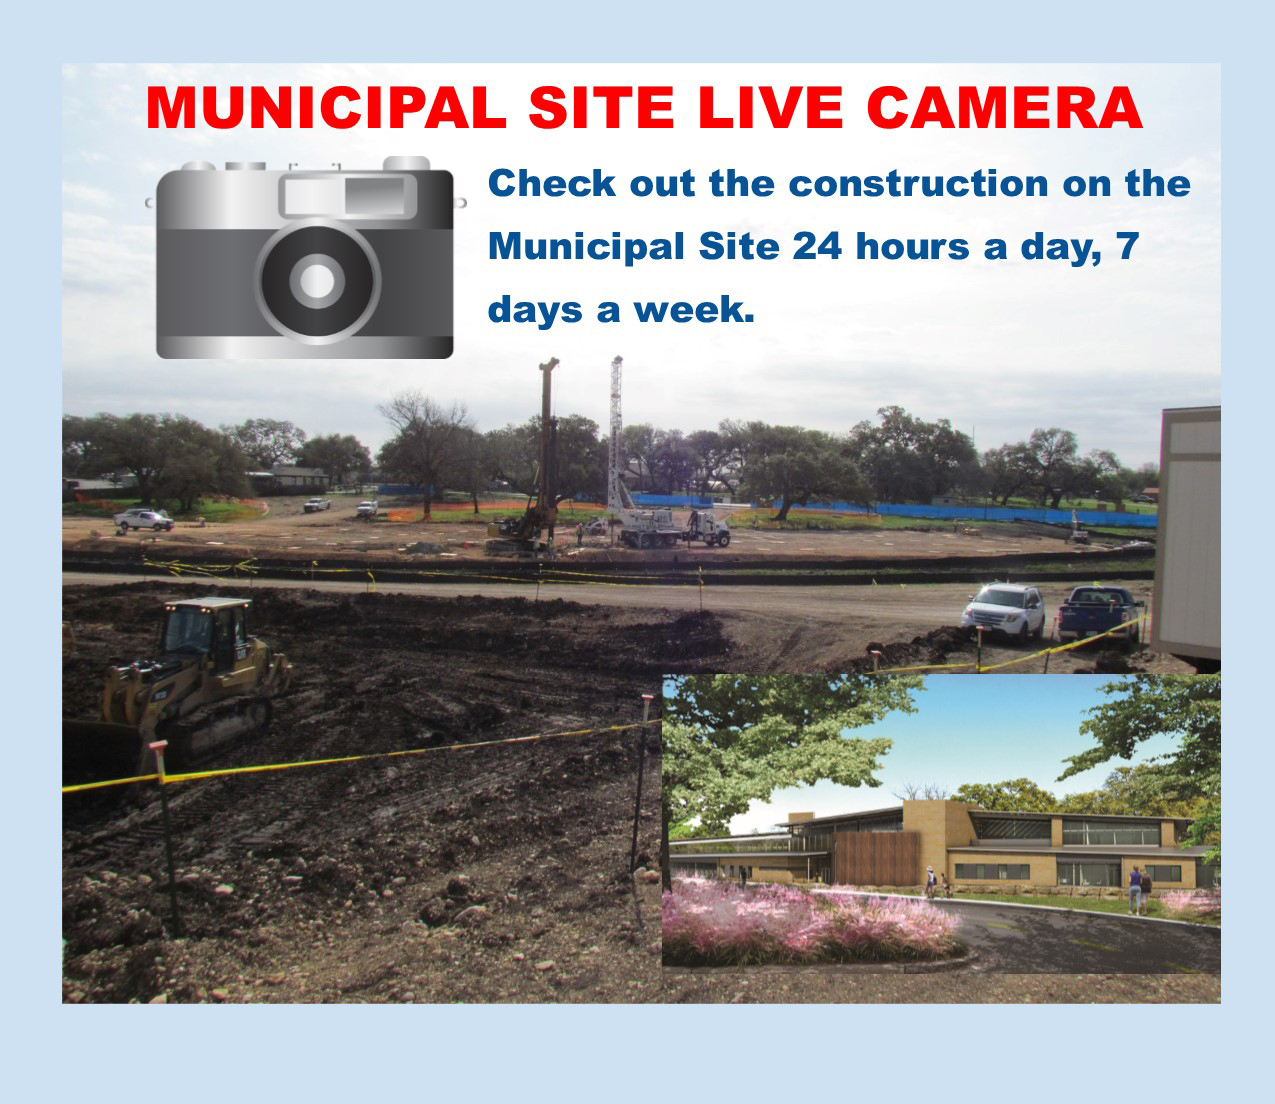 Municipal Site Live Camera Pic